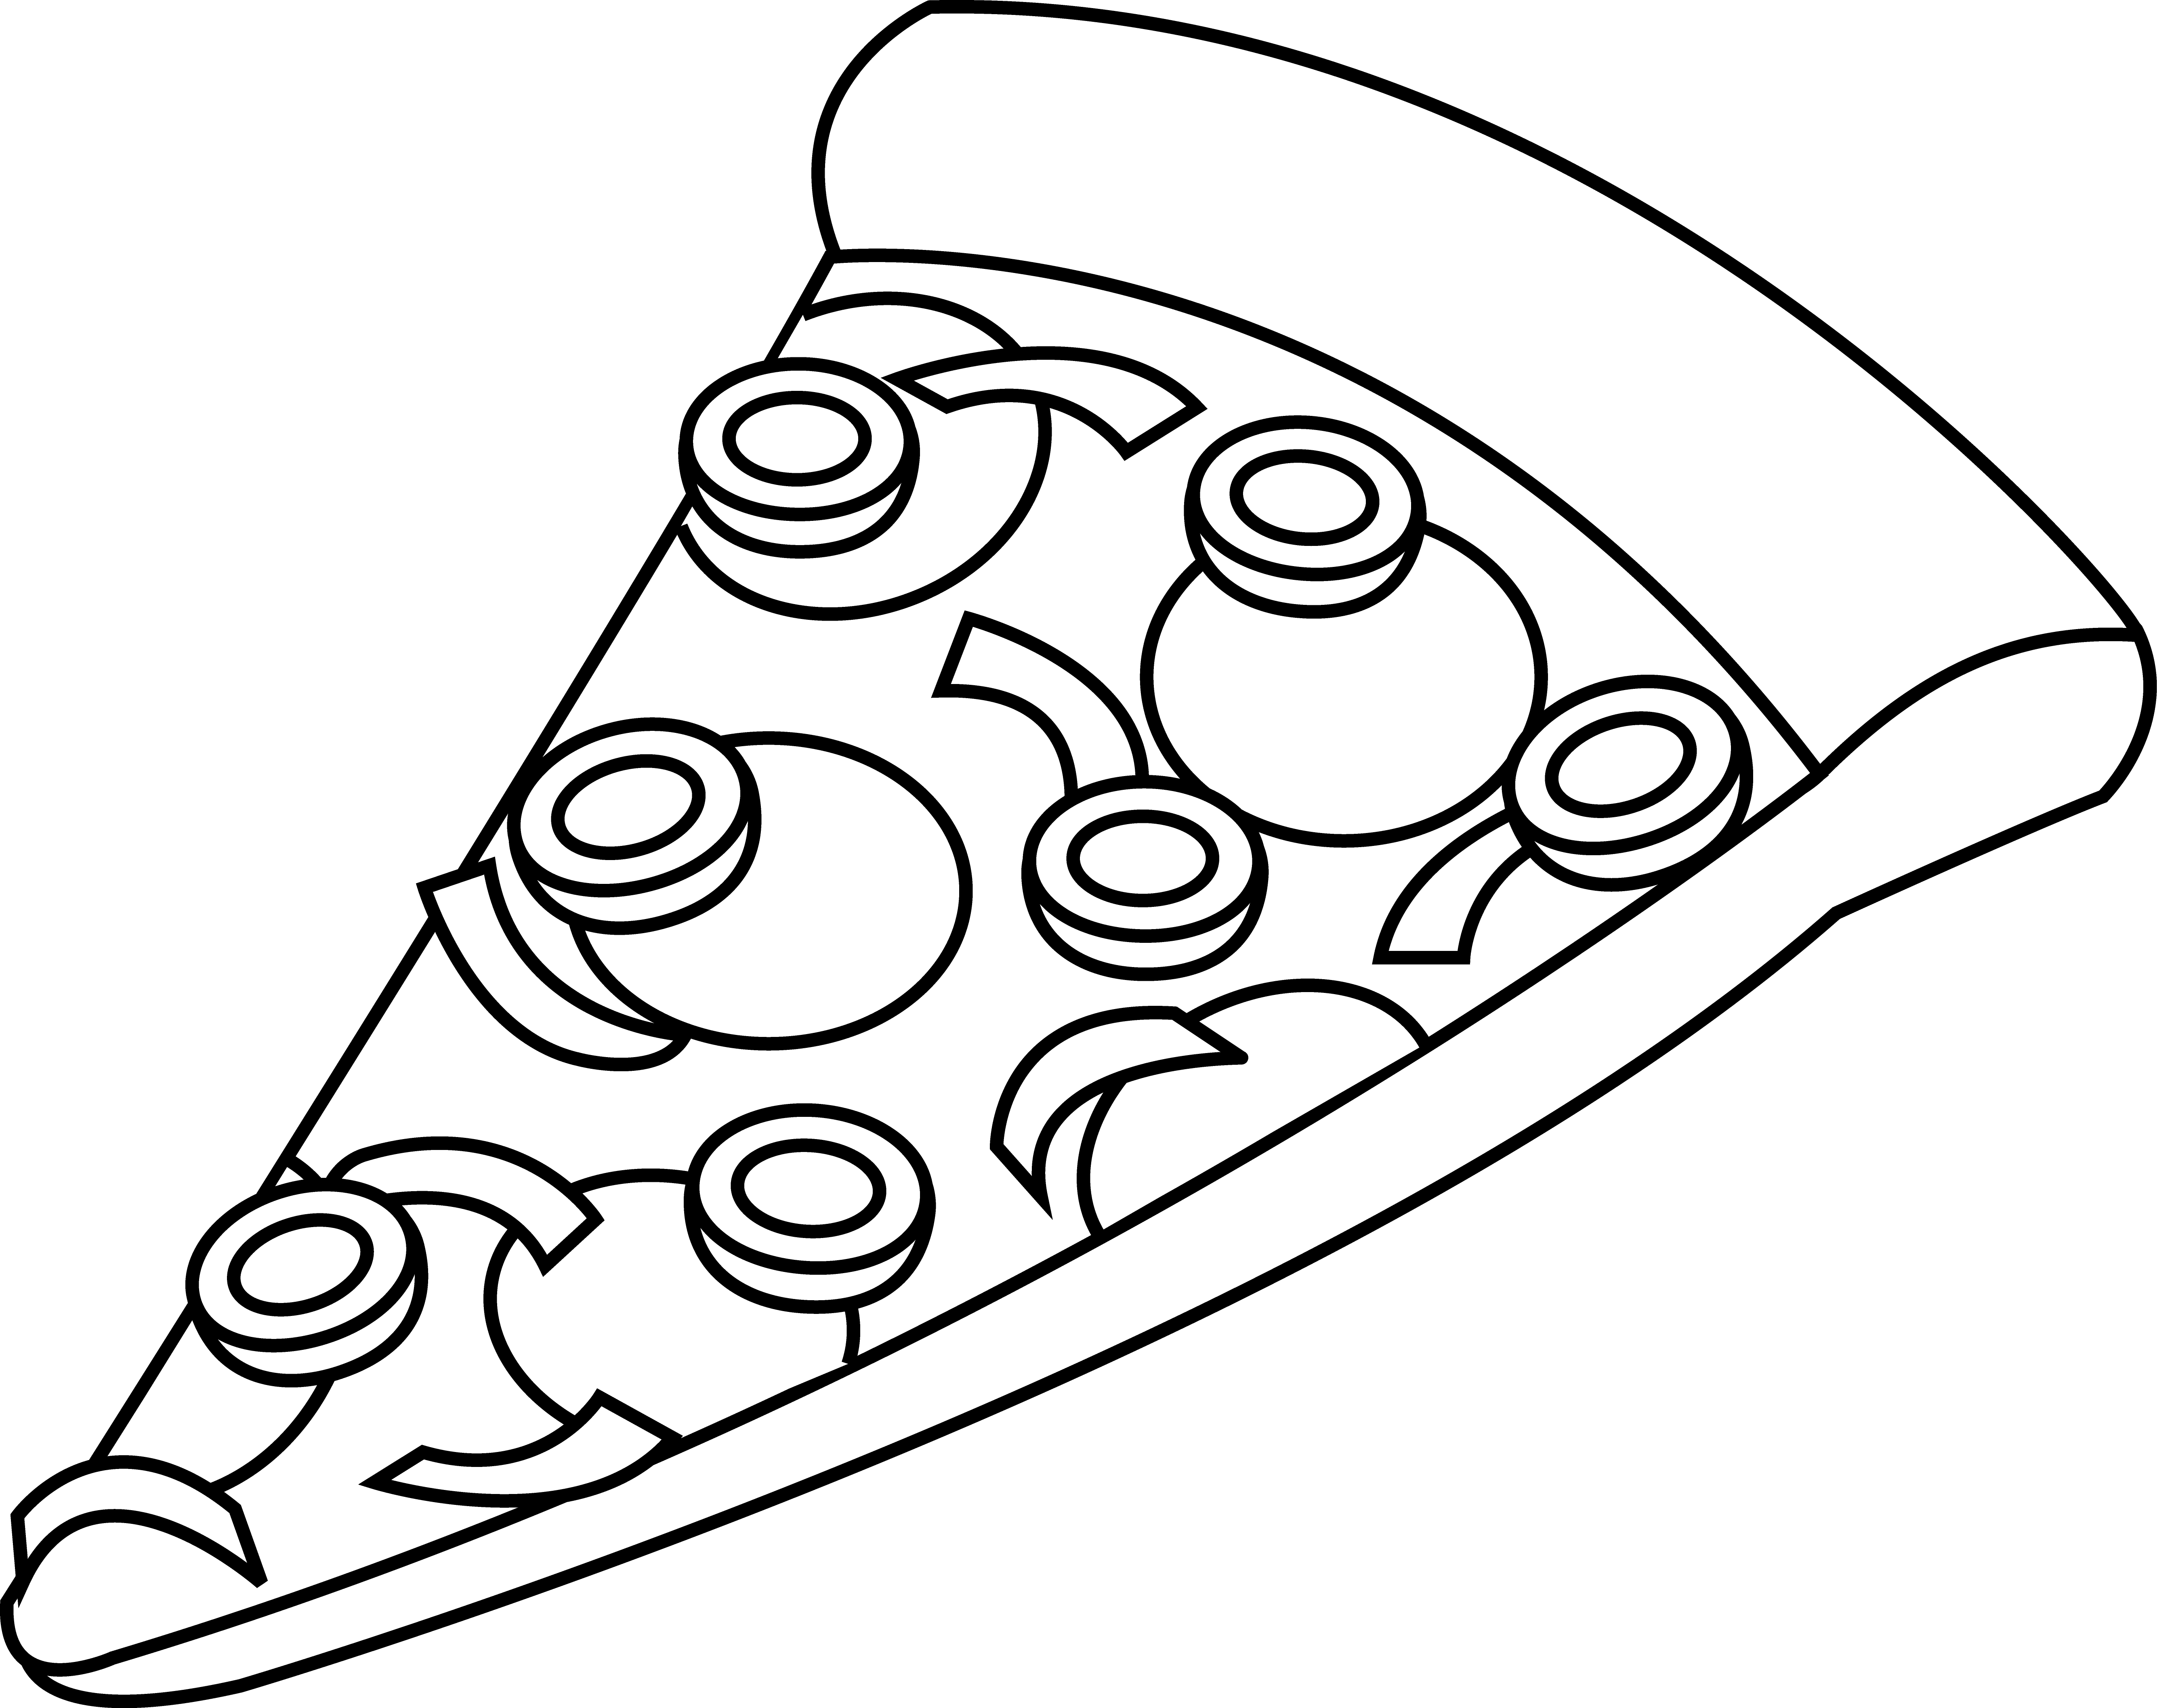 Amd clipart pizza Clipart Clipart Clipart Pizza And